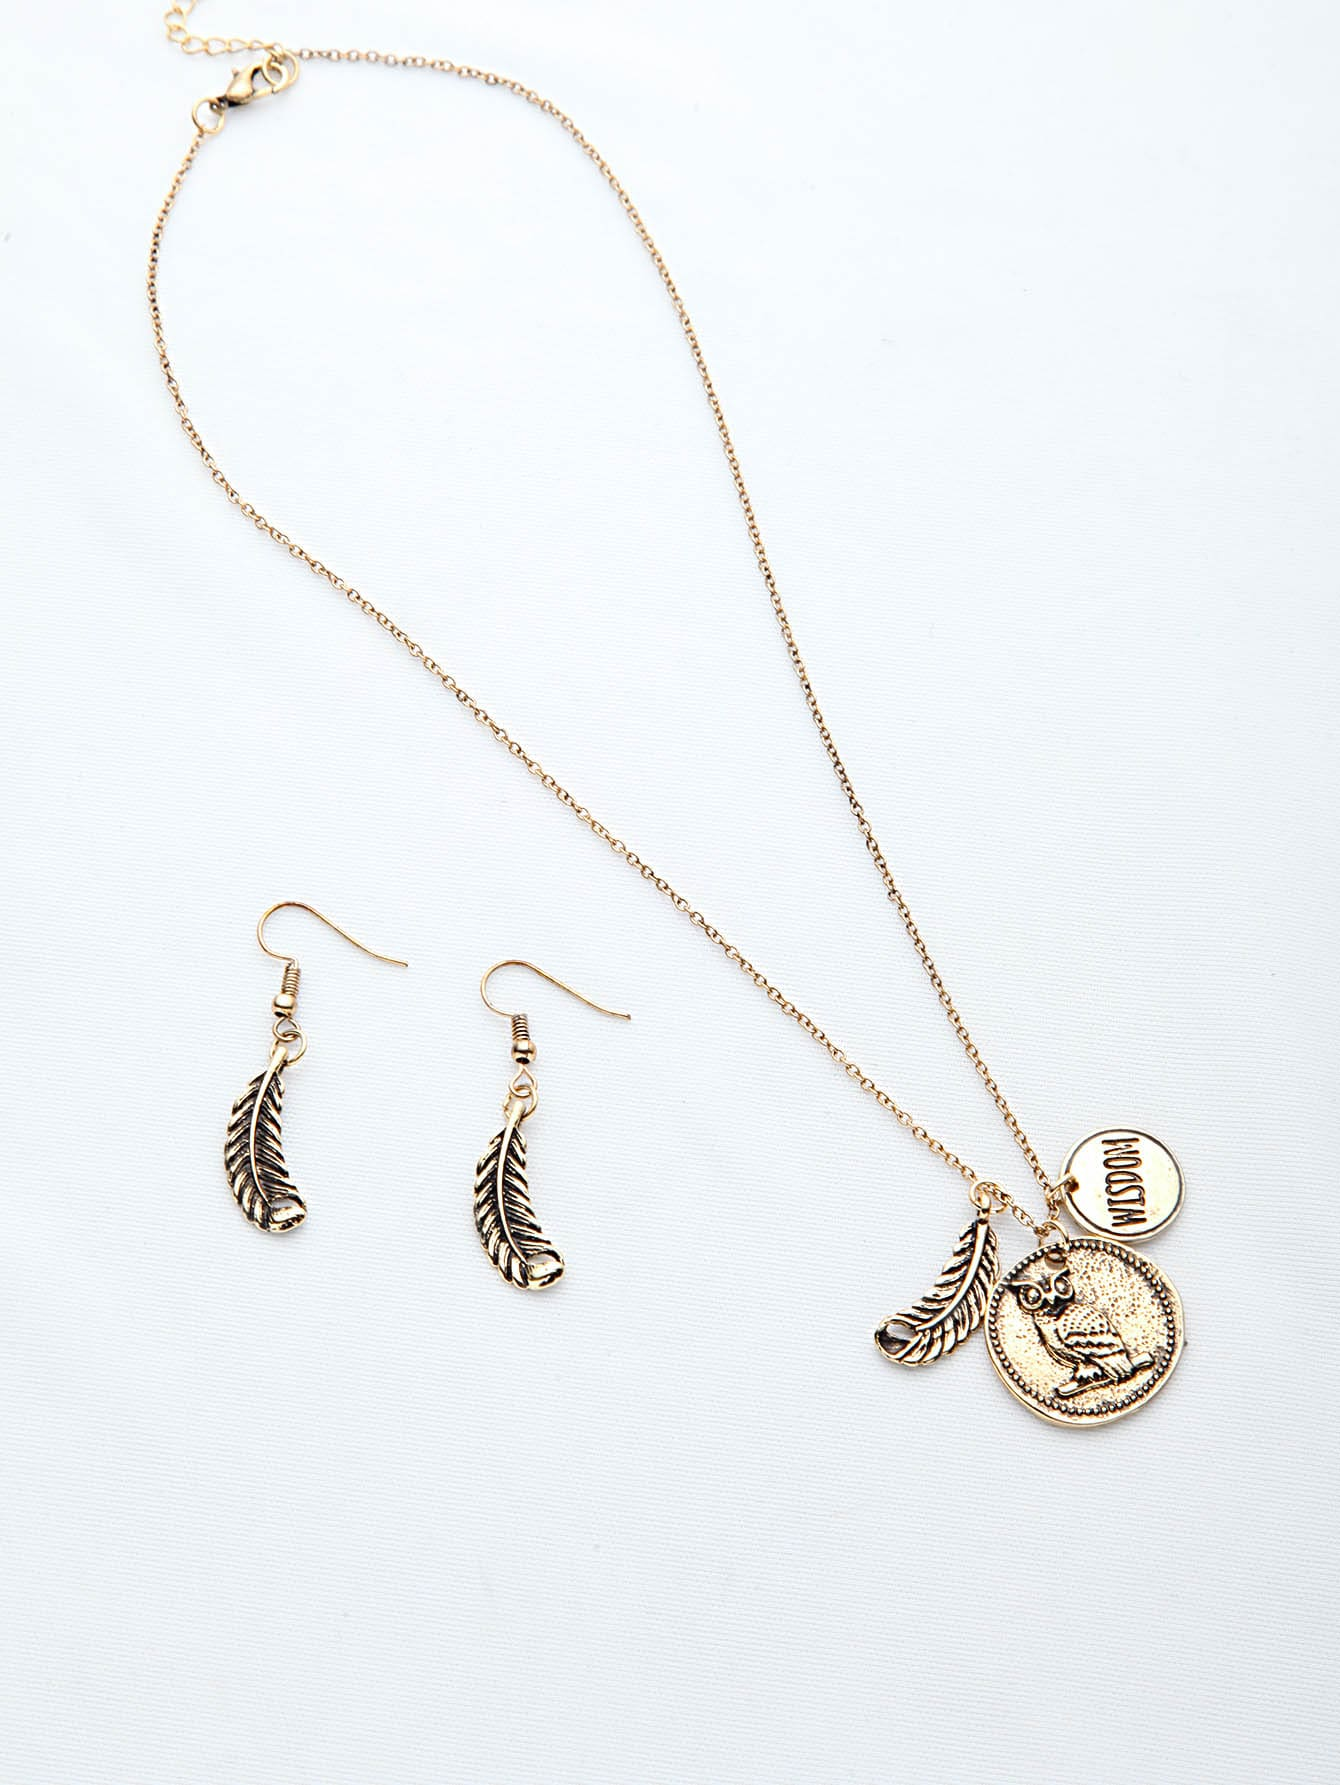 Silver Leaf Shaped Gold Metallic Pendant Necklace With Earrings